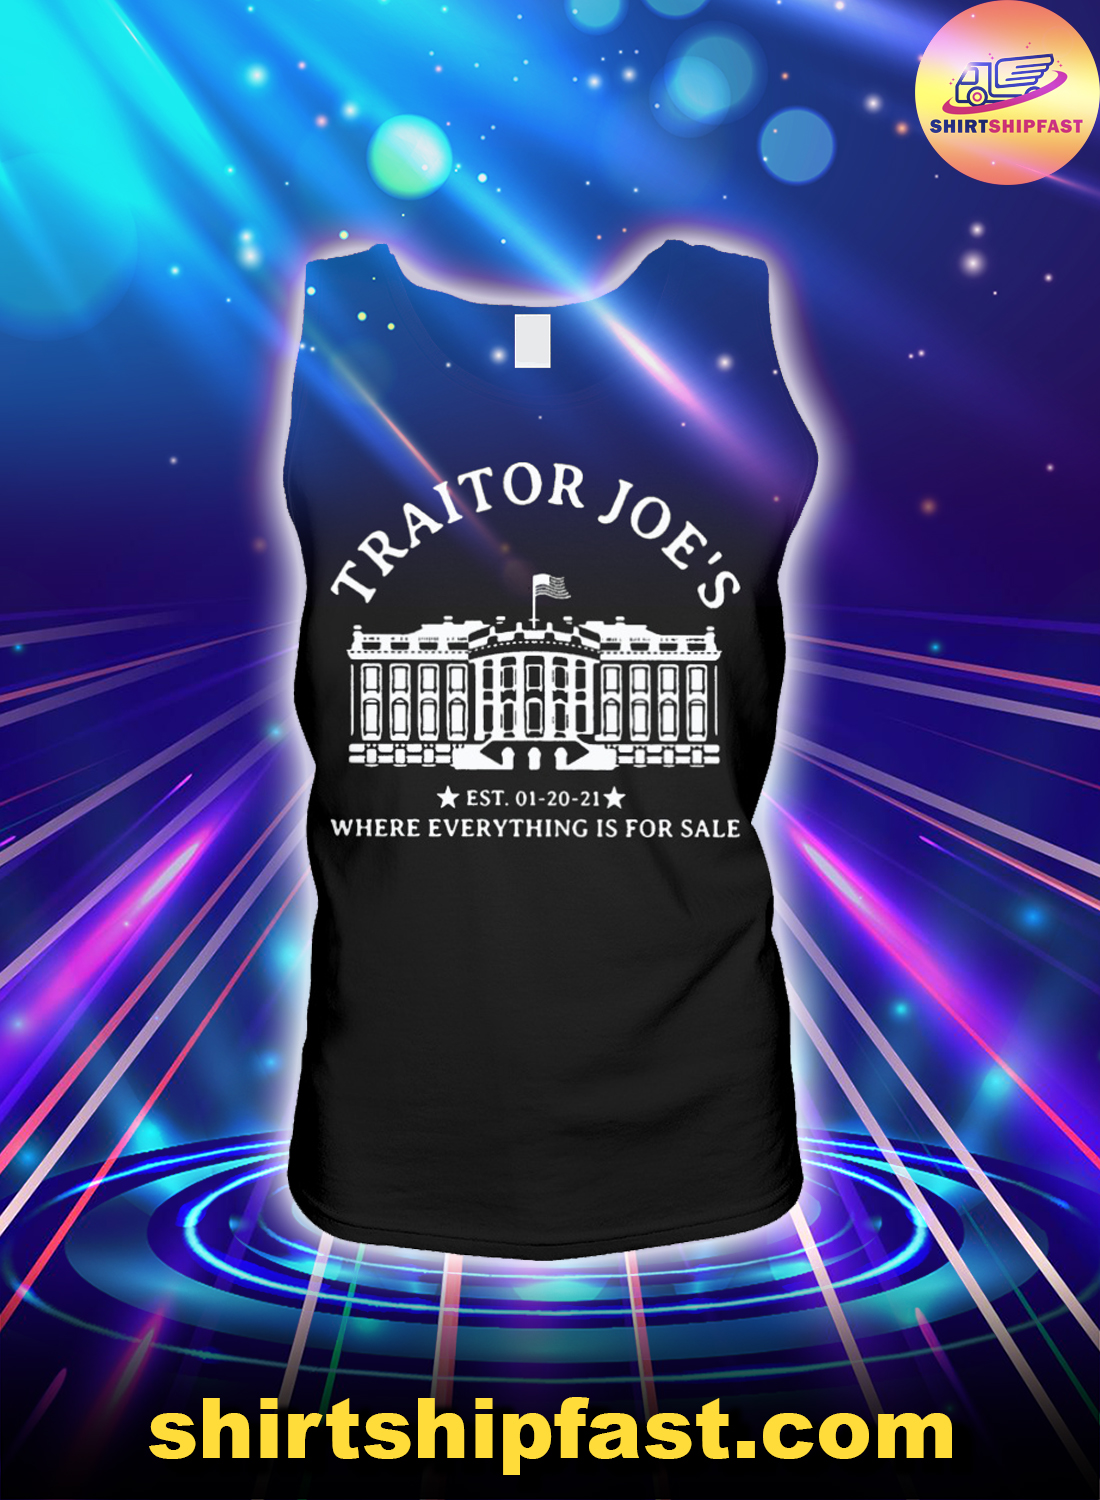 Traitor Joe's where everything is for sale tank top